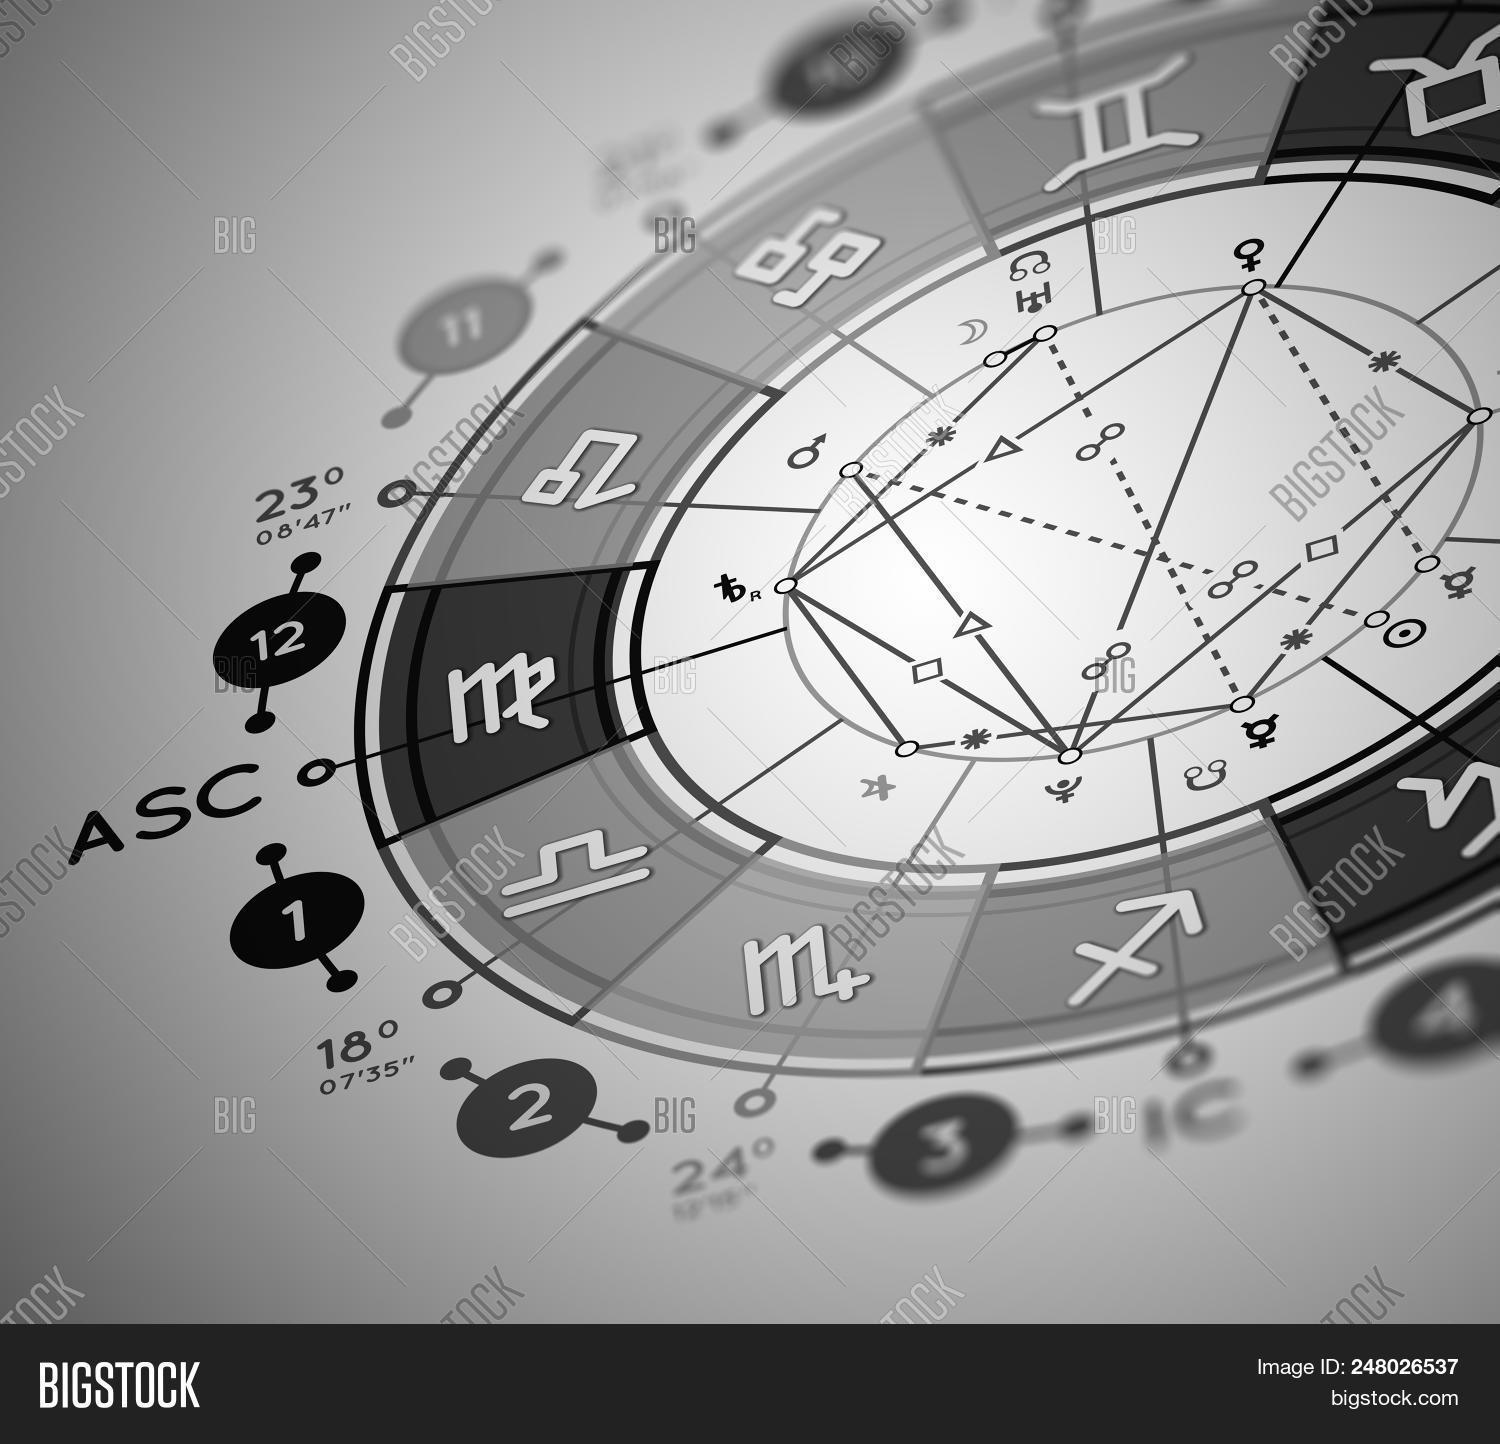 Astrology Background  Image & Photo (Free Trial) | Bigstock